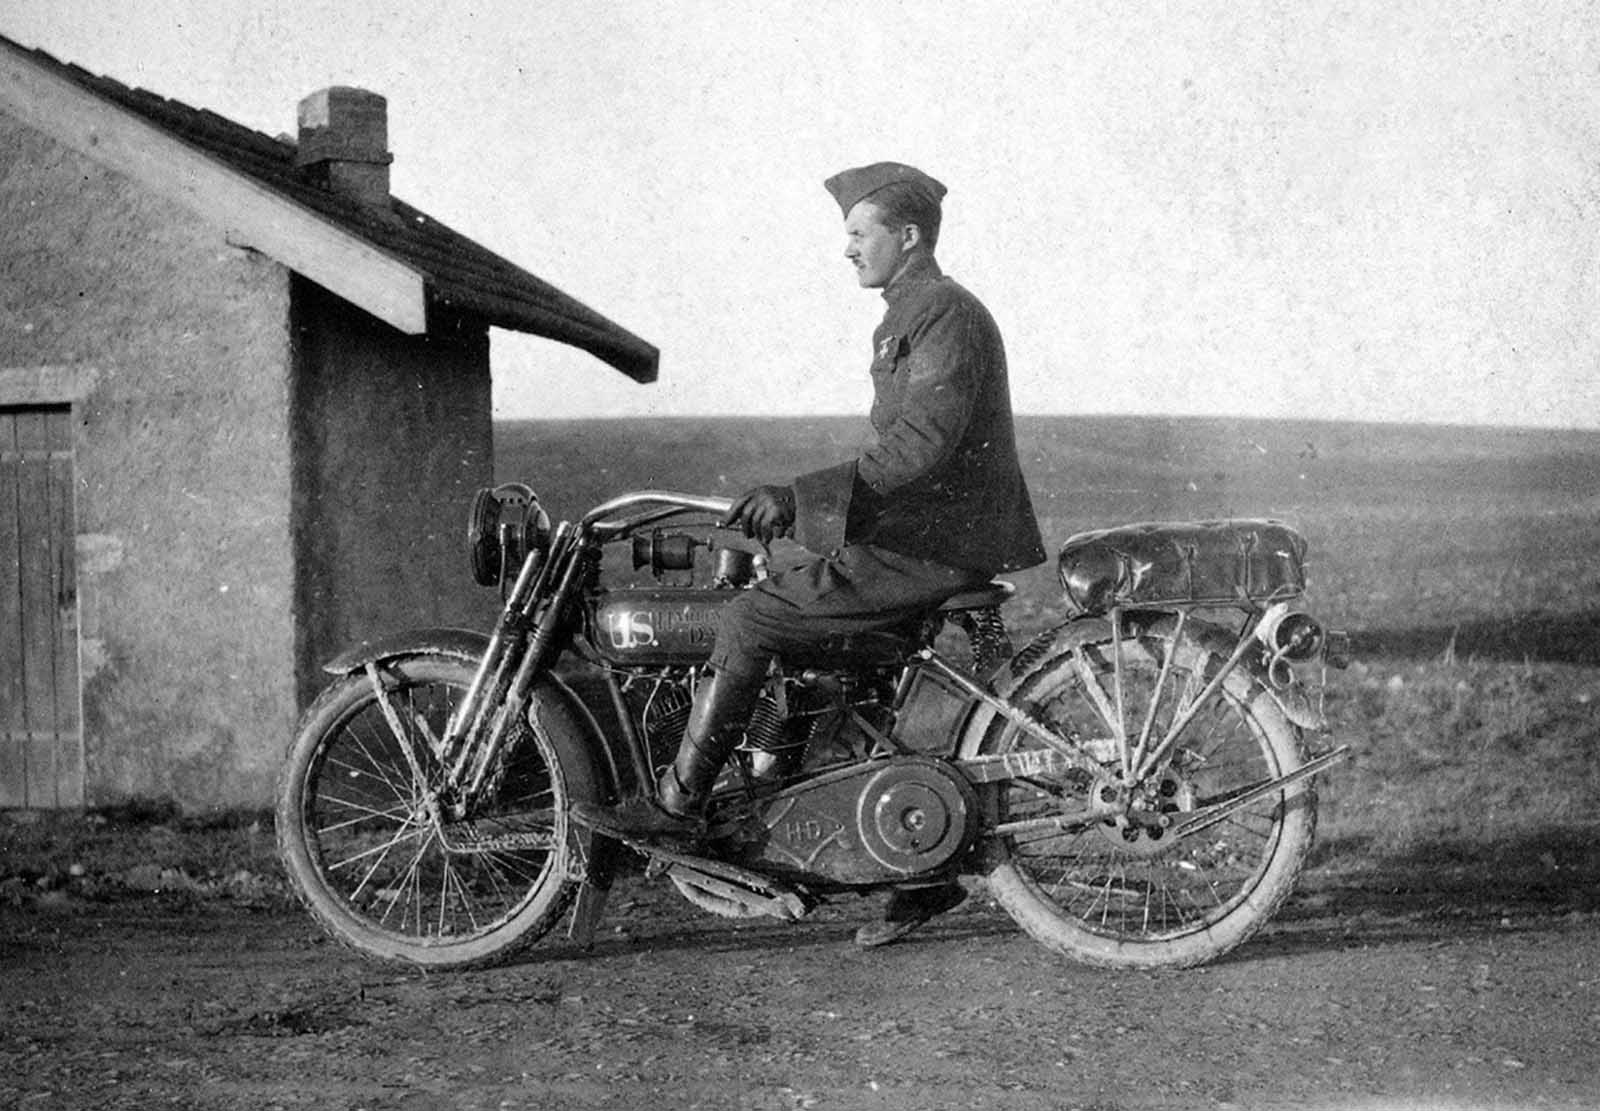 Soldier on a U.S. Harley-Davidson motorcycle, ca. 1918. During the last years of the war, the United States deployed more than 20,000 Indian and Harley-Davidson motorcycles overseas.